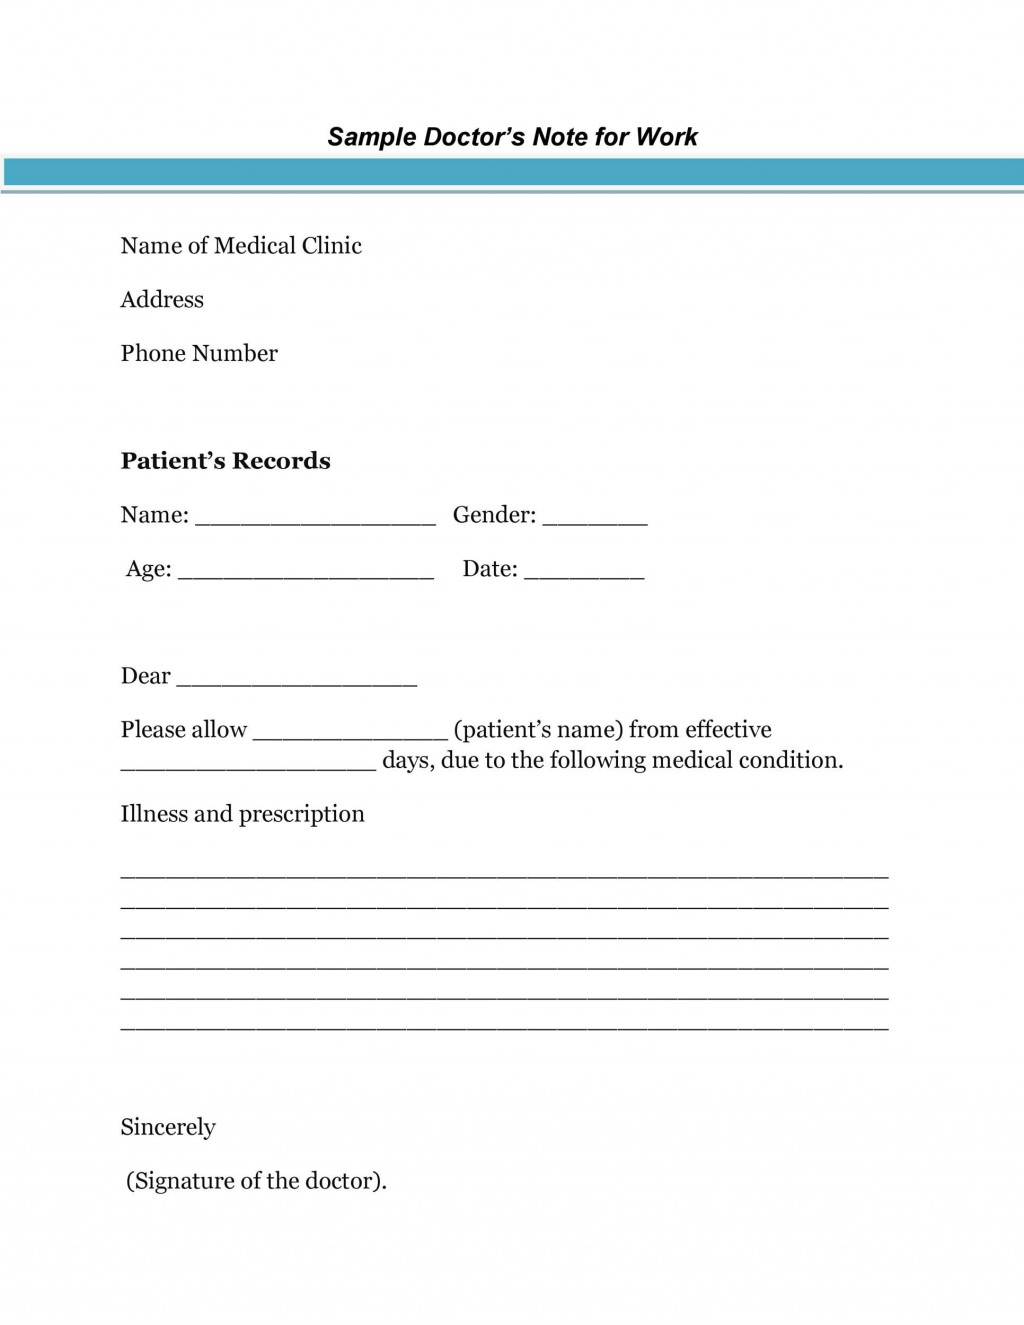 003 Awful Urgent Care Doctor Note Template High Resolution  Sample Fake Doctor' PrintableLarge